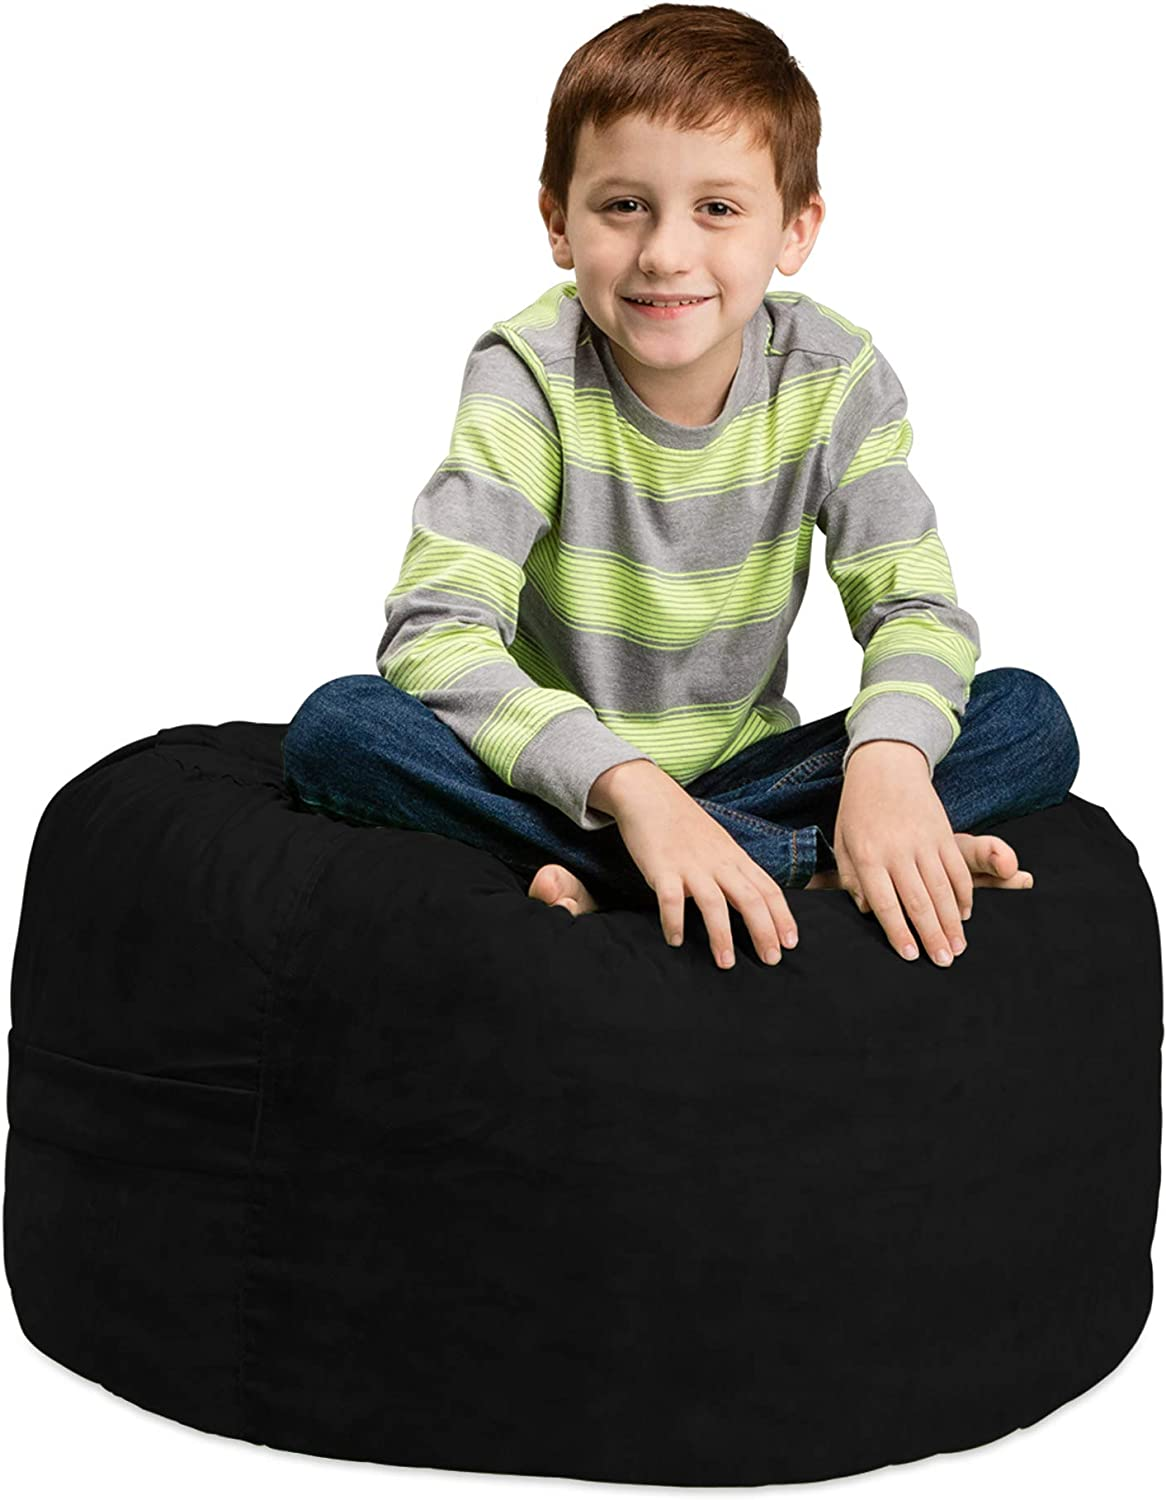 Top 9 Best Bean Bag Chairs For Kids (2020 Reviews & Guide) 4